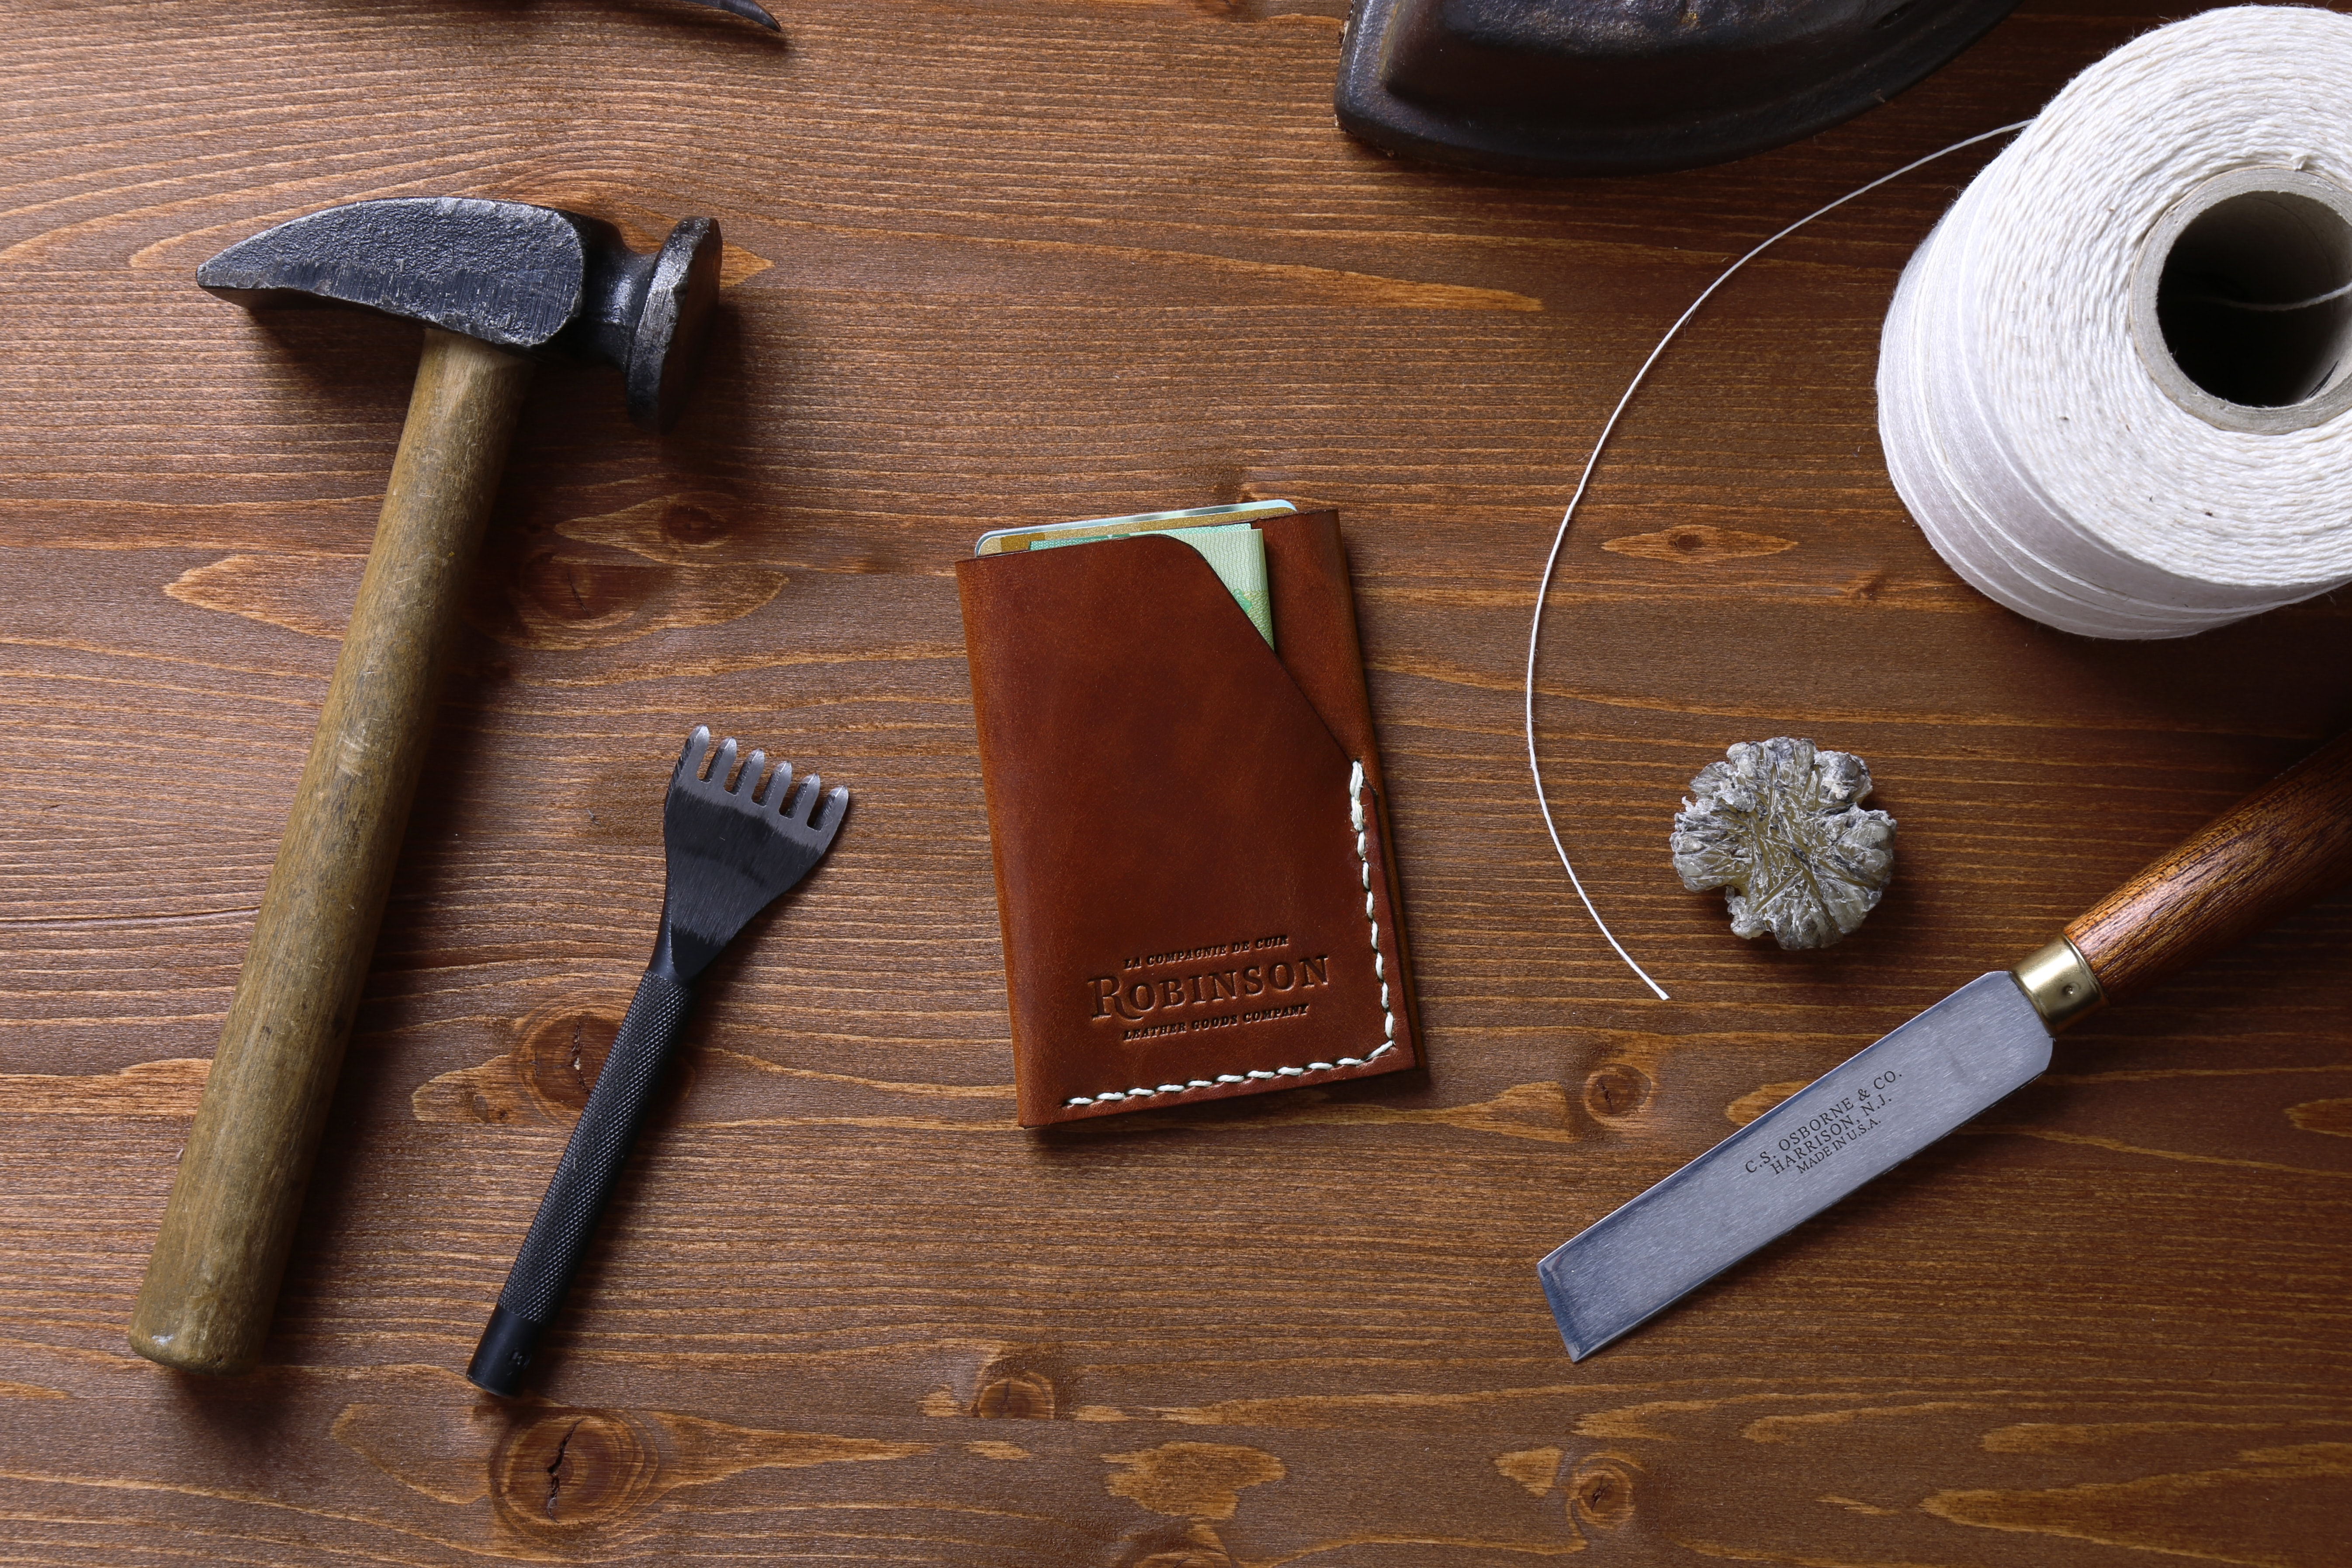 An overhead shot of a leather document sleeve among various tools on a wooden surface